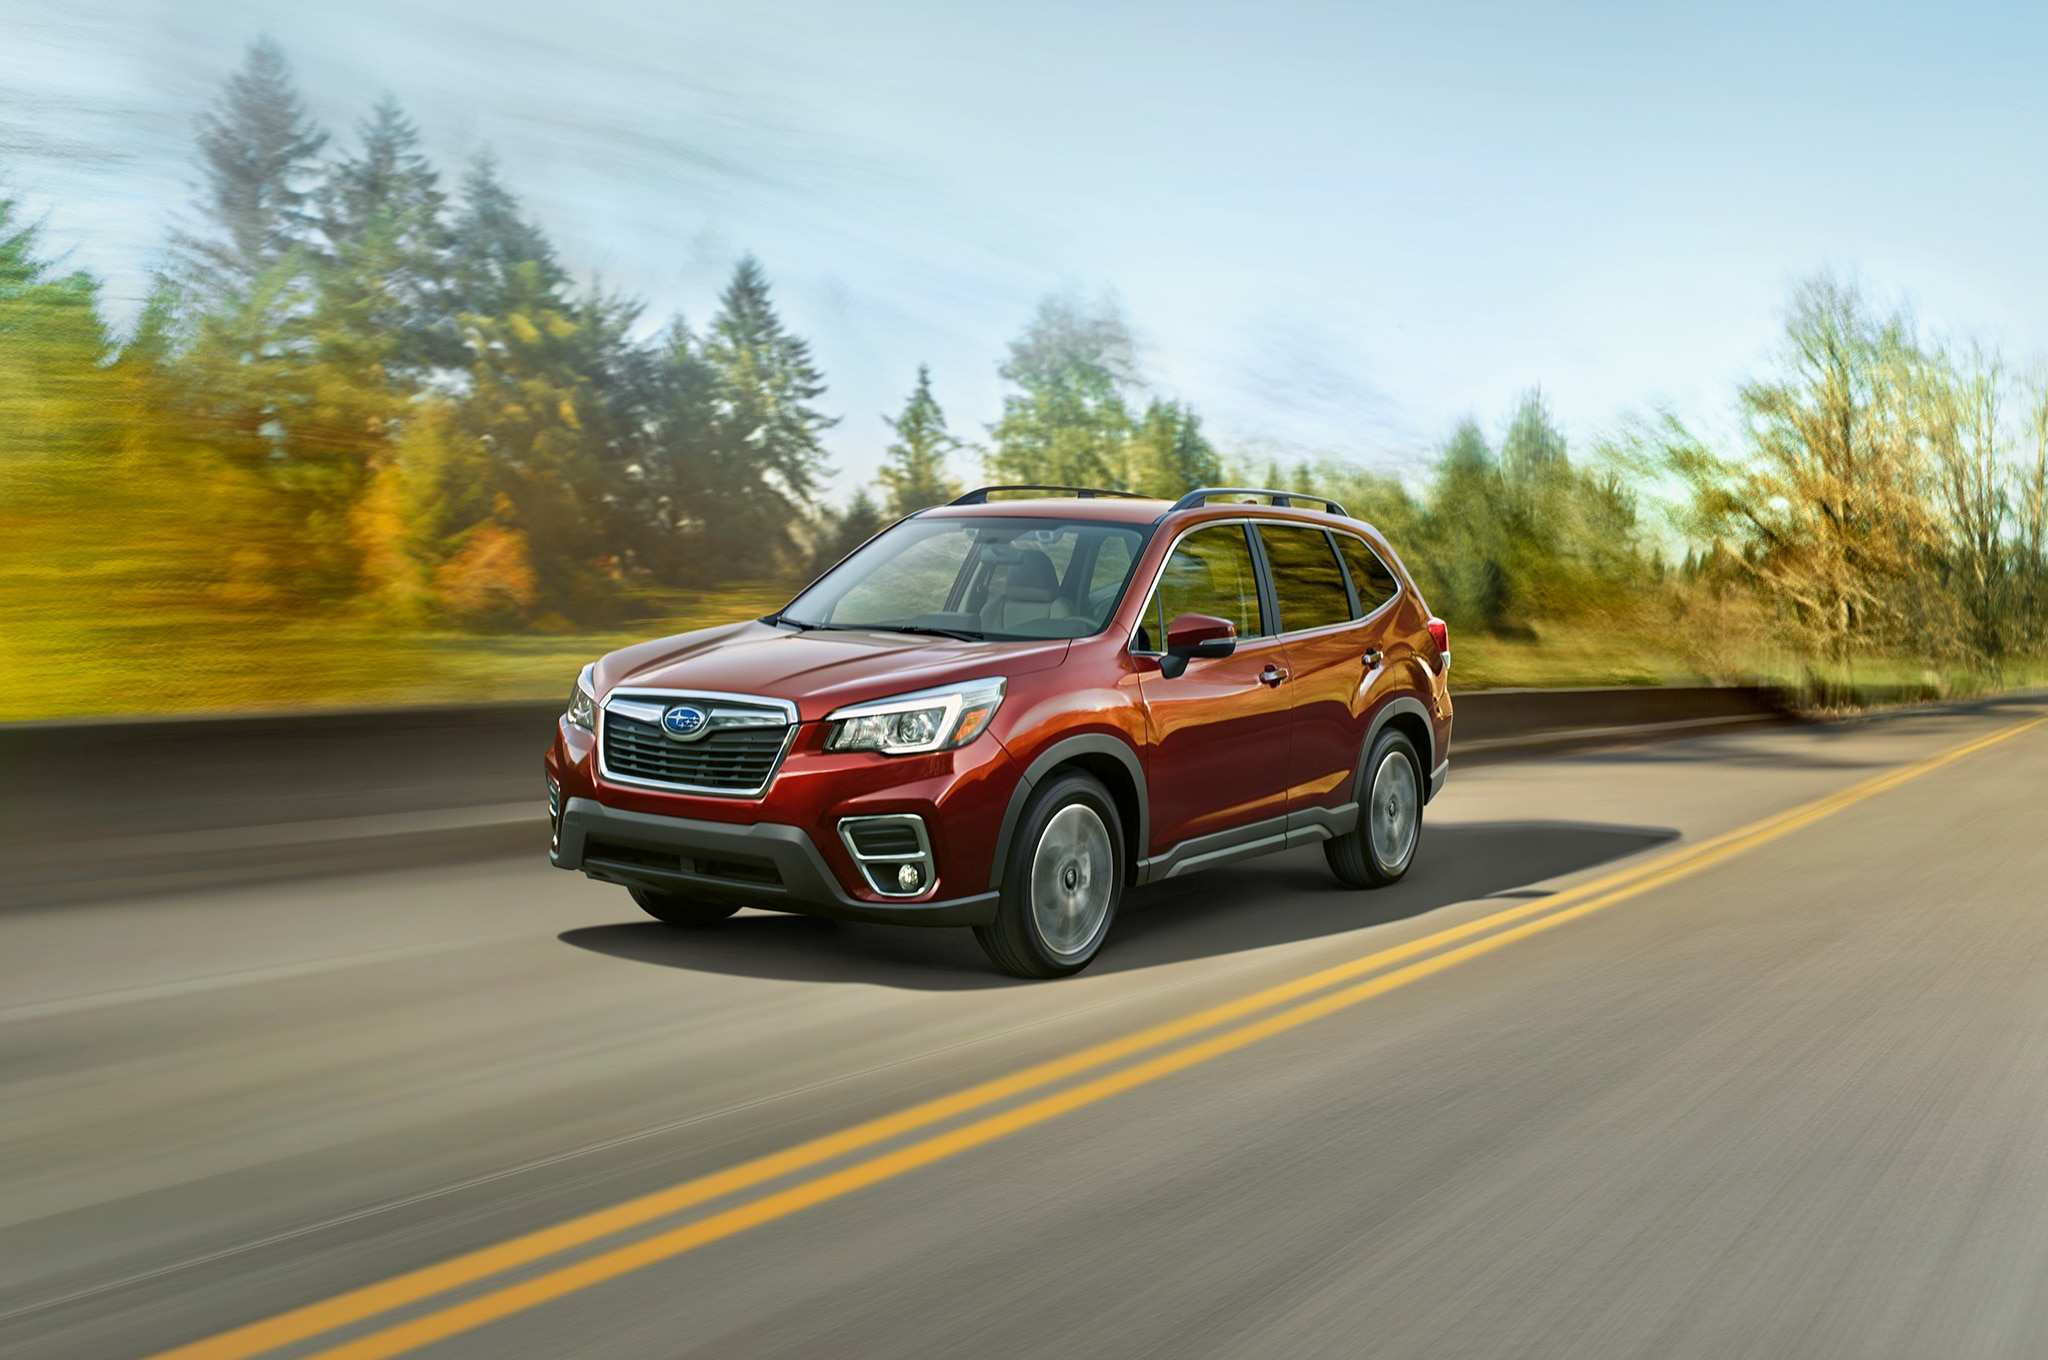 99 New Subaru Forester 2020 Colors Specs and Review for Subaru Forester 2020 Colors